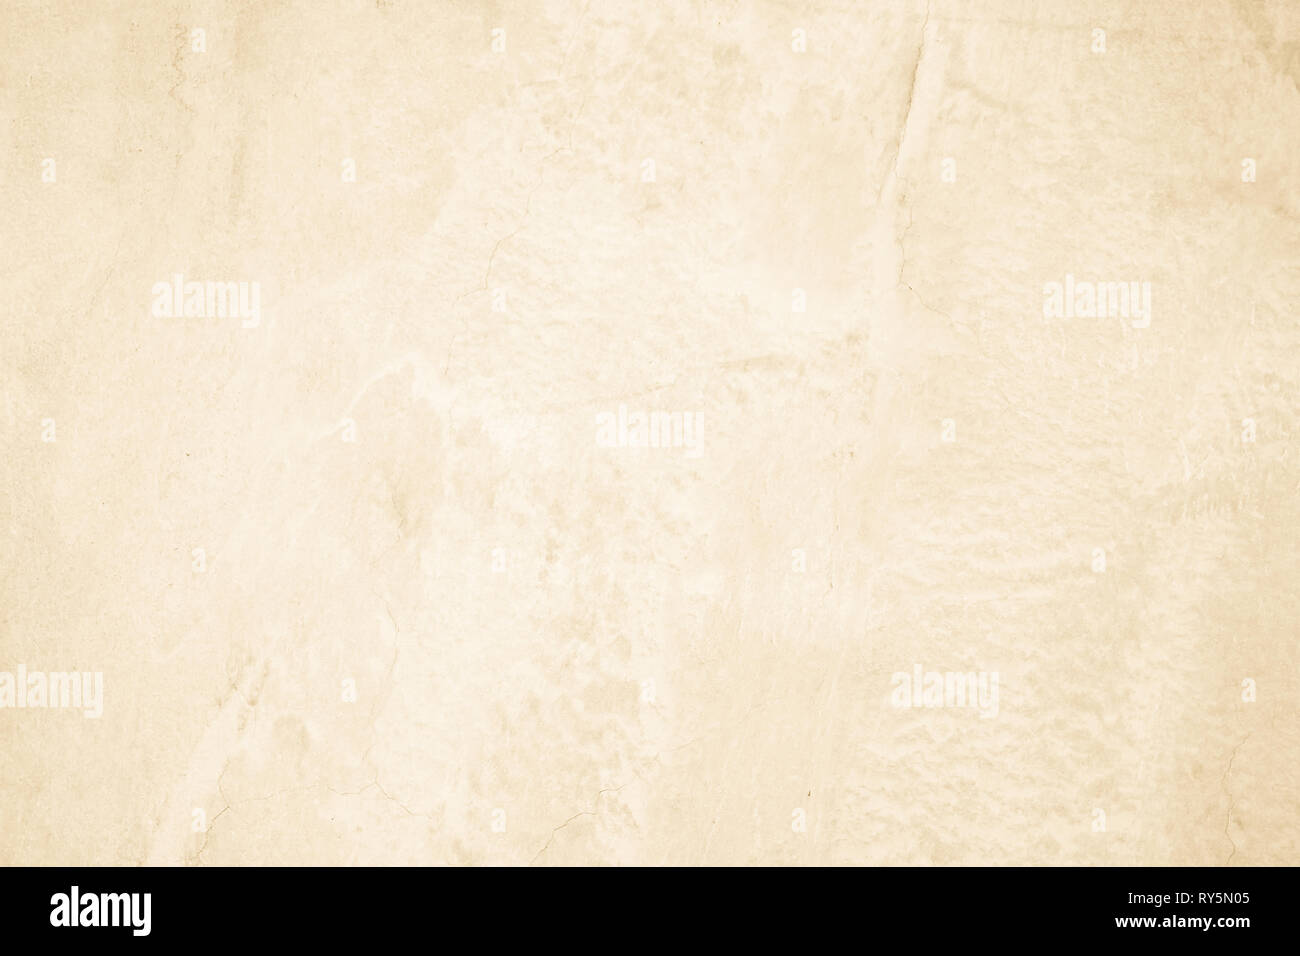 Cream concreted wall for interiors or outdoor exposed surface polished concrete. Cement have sand and stone of tone vintage, natural patterns old anti - Stock Image